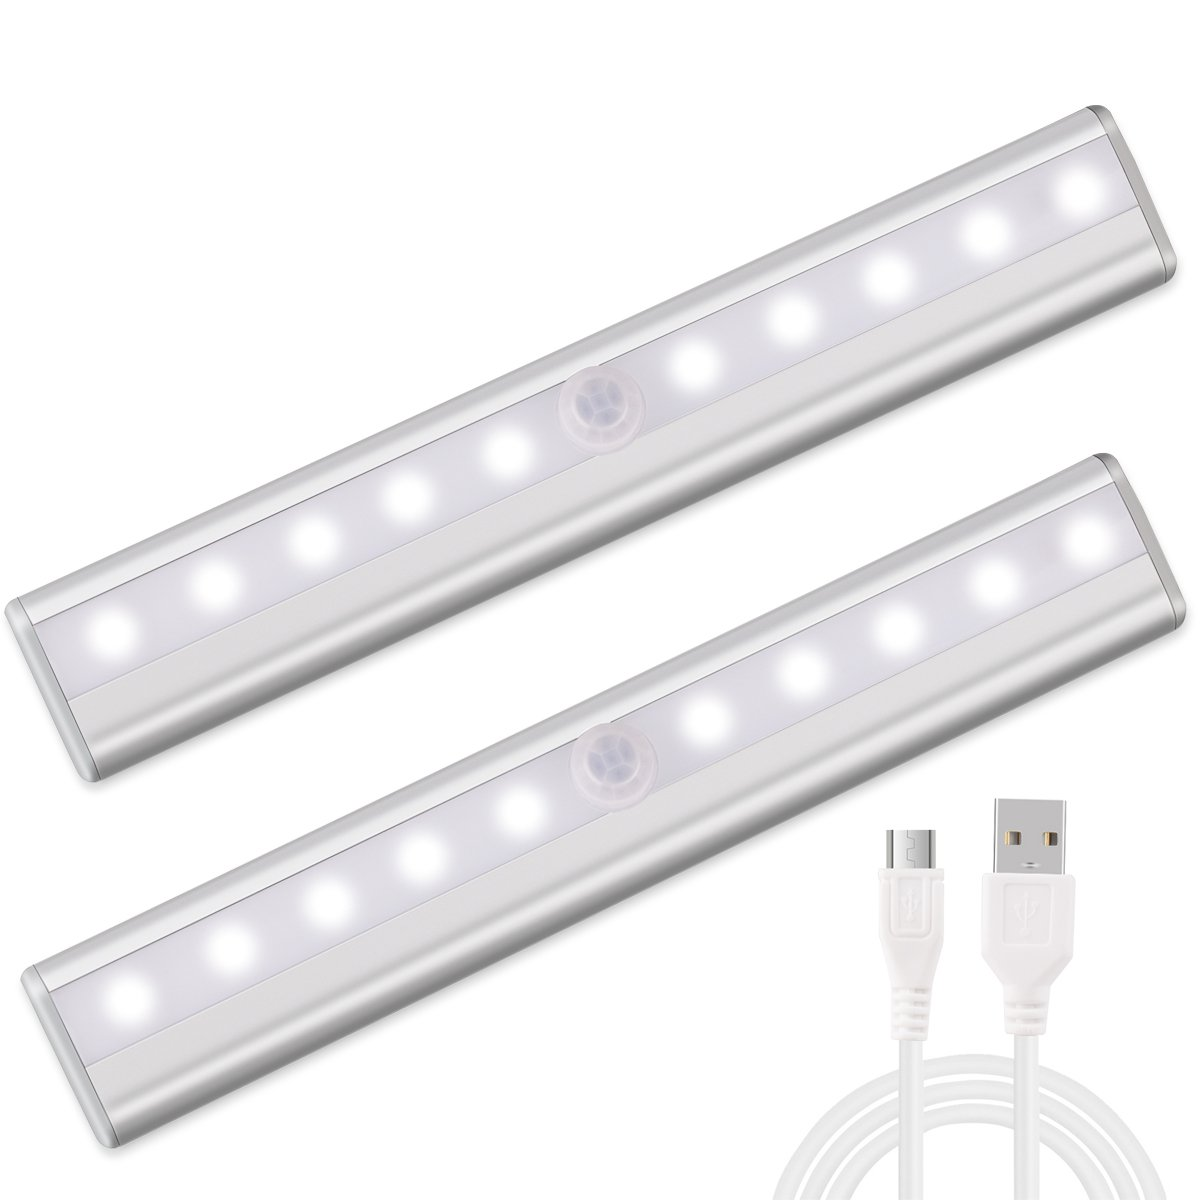 Morpilot Motion Sensing Closet Led Lights, Stick-on Anywhere Portable Wireless USB Rechargeable Cabinet Night Stairs Step Light Bar with Magnetic Strip (10 LED)